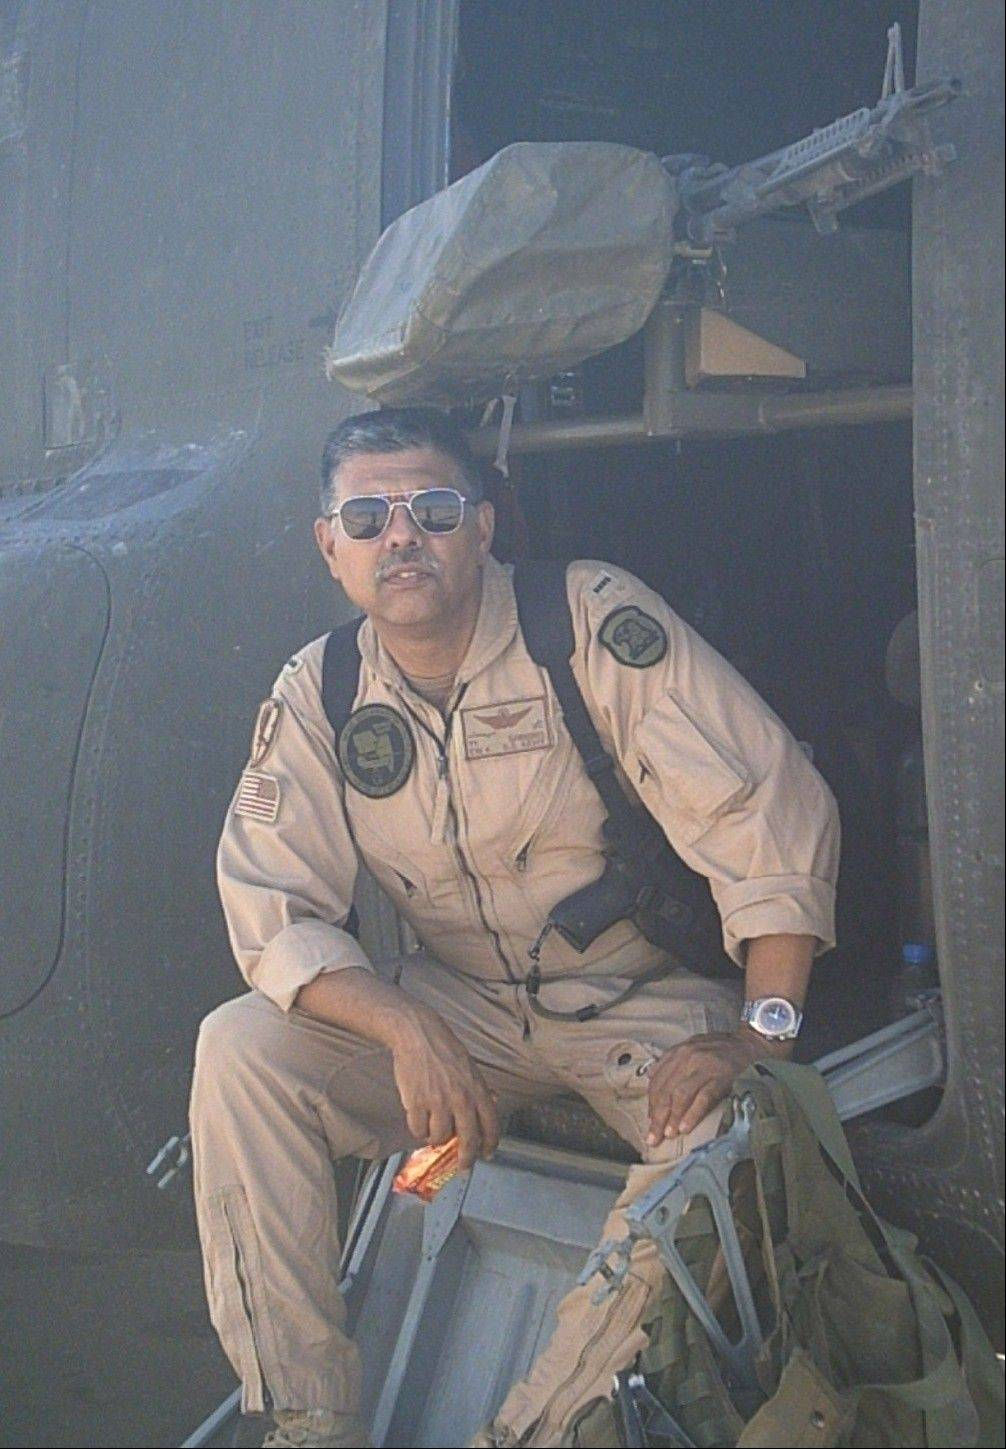 Chief Warrant Officer 4 Ty Simmons USA (ret), pictured during his service in Iraq.